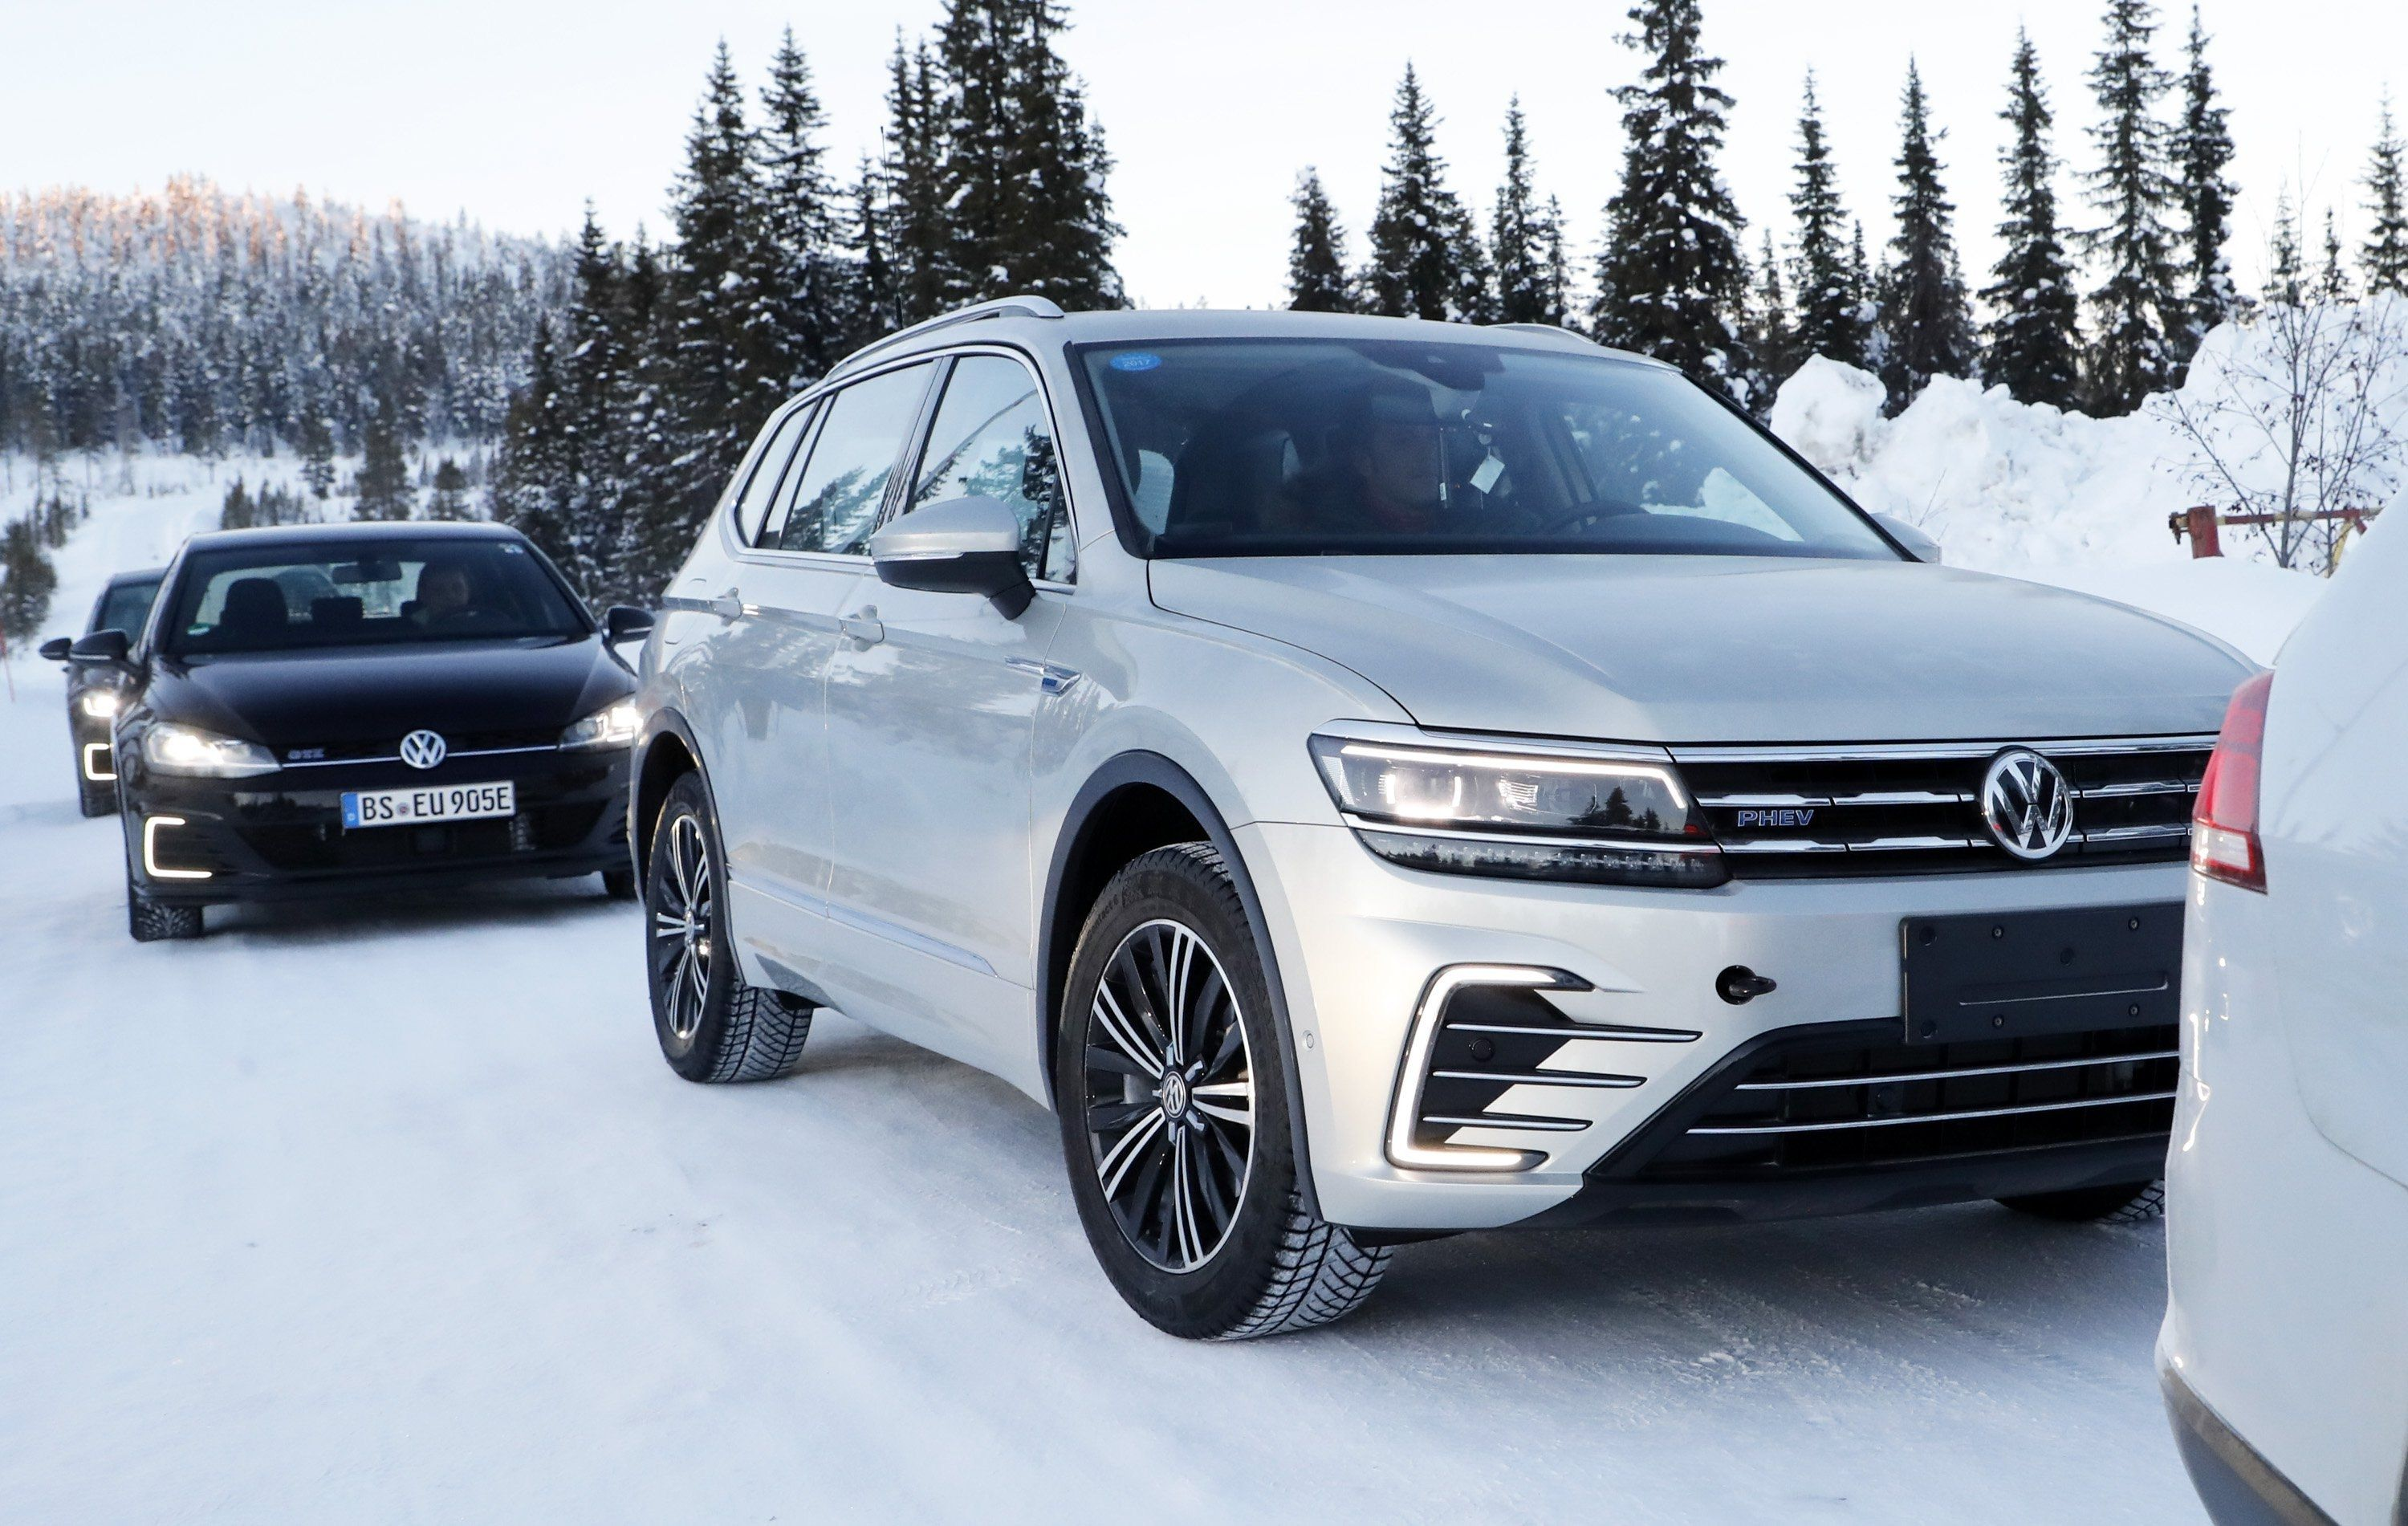 Top 2020 Facelift Vw Tiguan Specs And Review Upcoming Cars Volkswagen Sport Touring